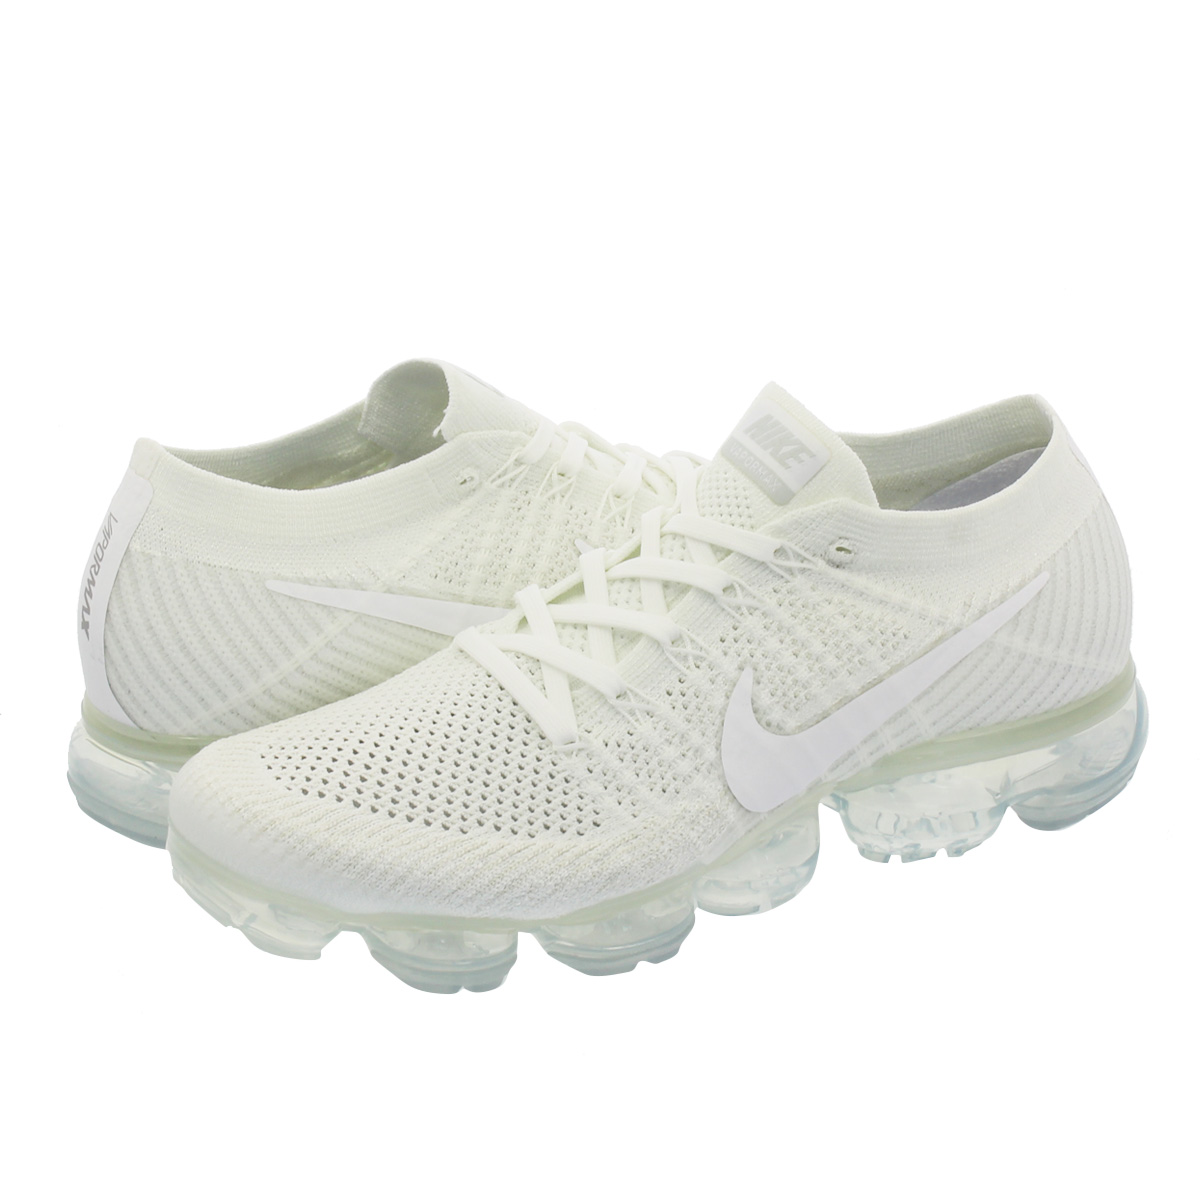 0dcec76d7a97 NIKE AIR VAPORMAX FLYKNIT Nike vapor max fried food knit WHITE WHITE SAIL LIGHT  BONE